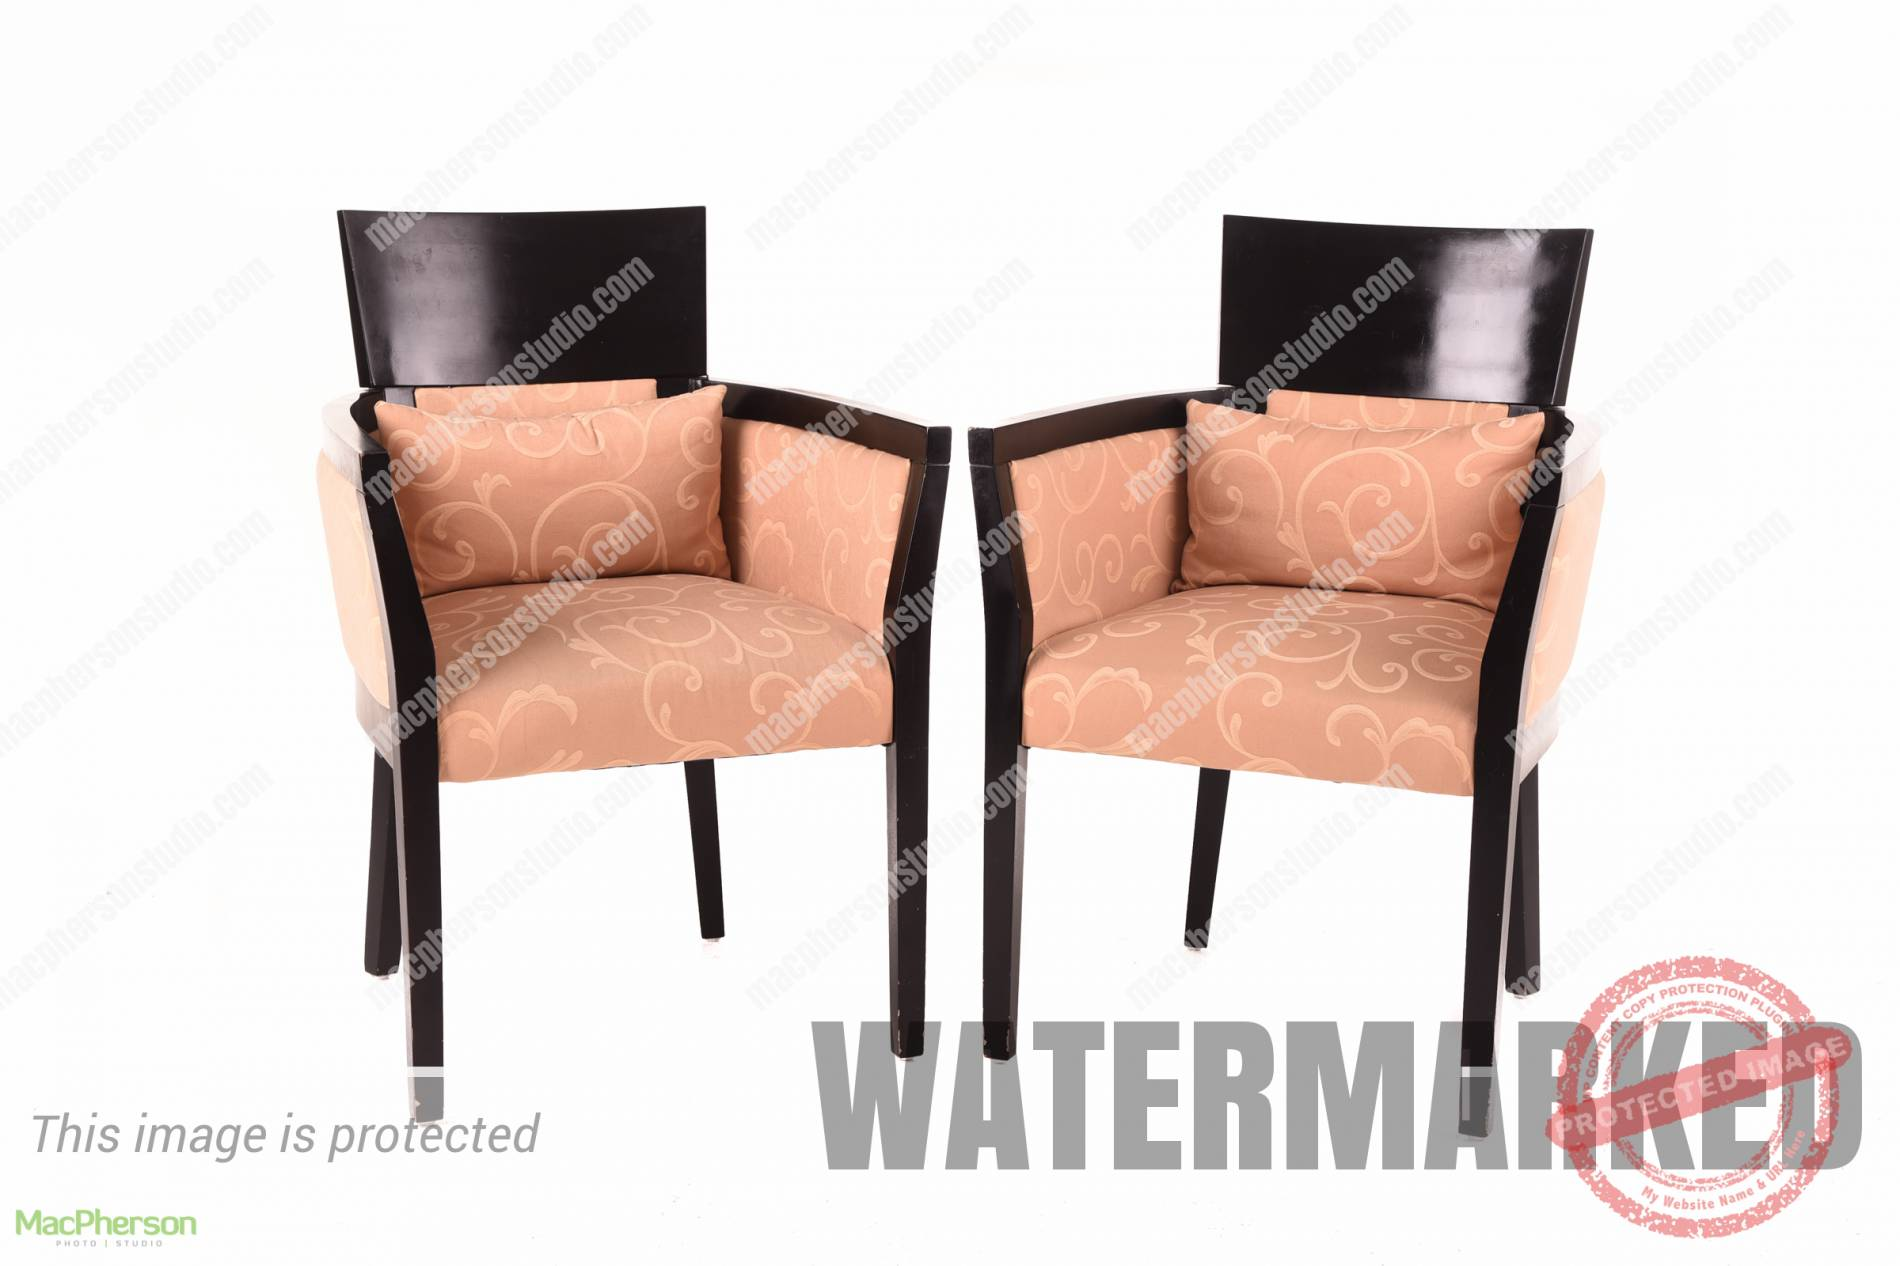 Wooden Arm Chair with Cushion - 2 pieces